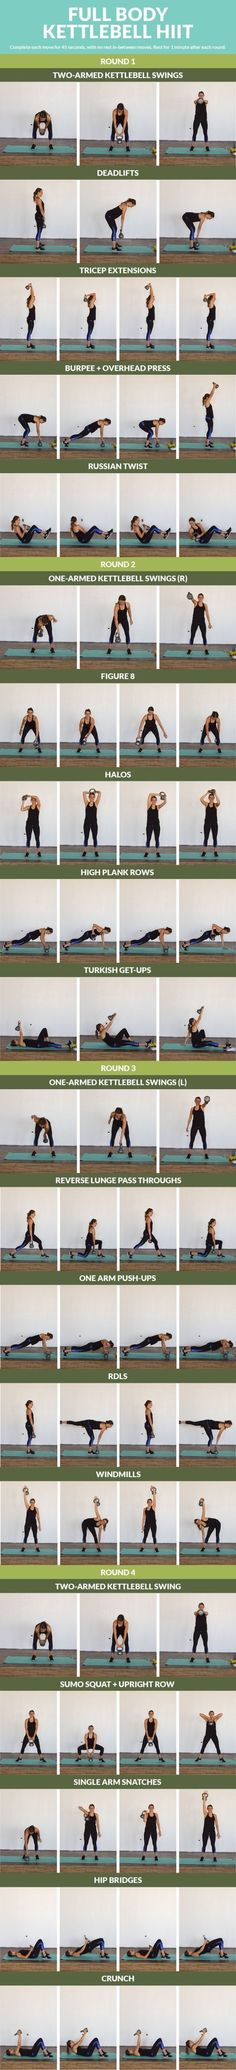 Strengthen your entire body with this 20 minute cardio and strength kettlebell combo! Mix up your regular workout routine with these fun, yet effective kettlebell exercises. You'll tone multiple mu… #kettlebellcardioworkout